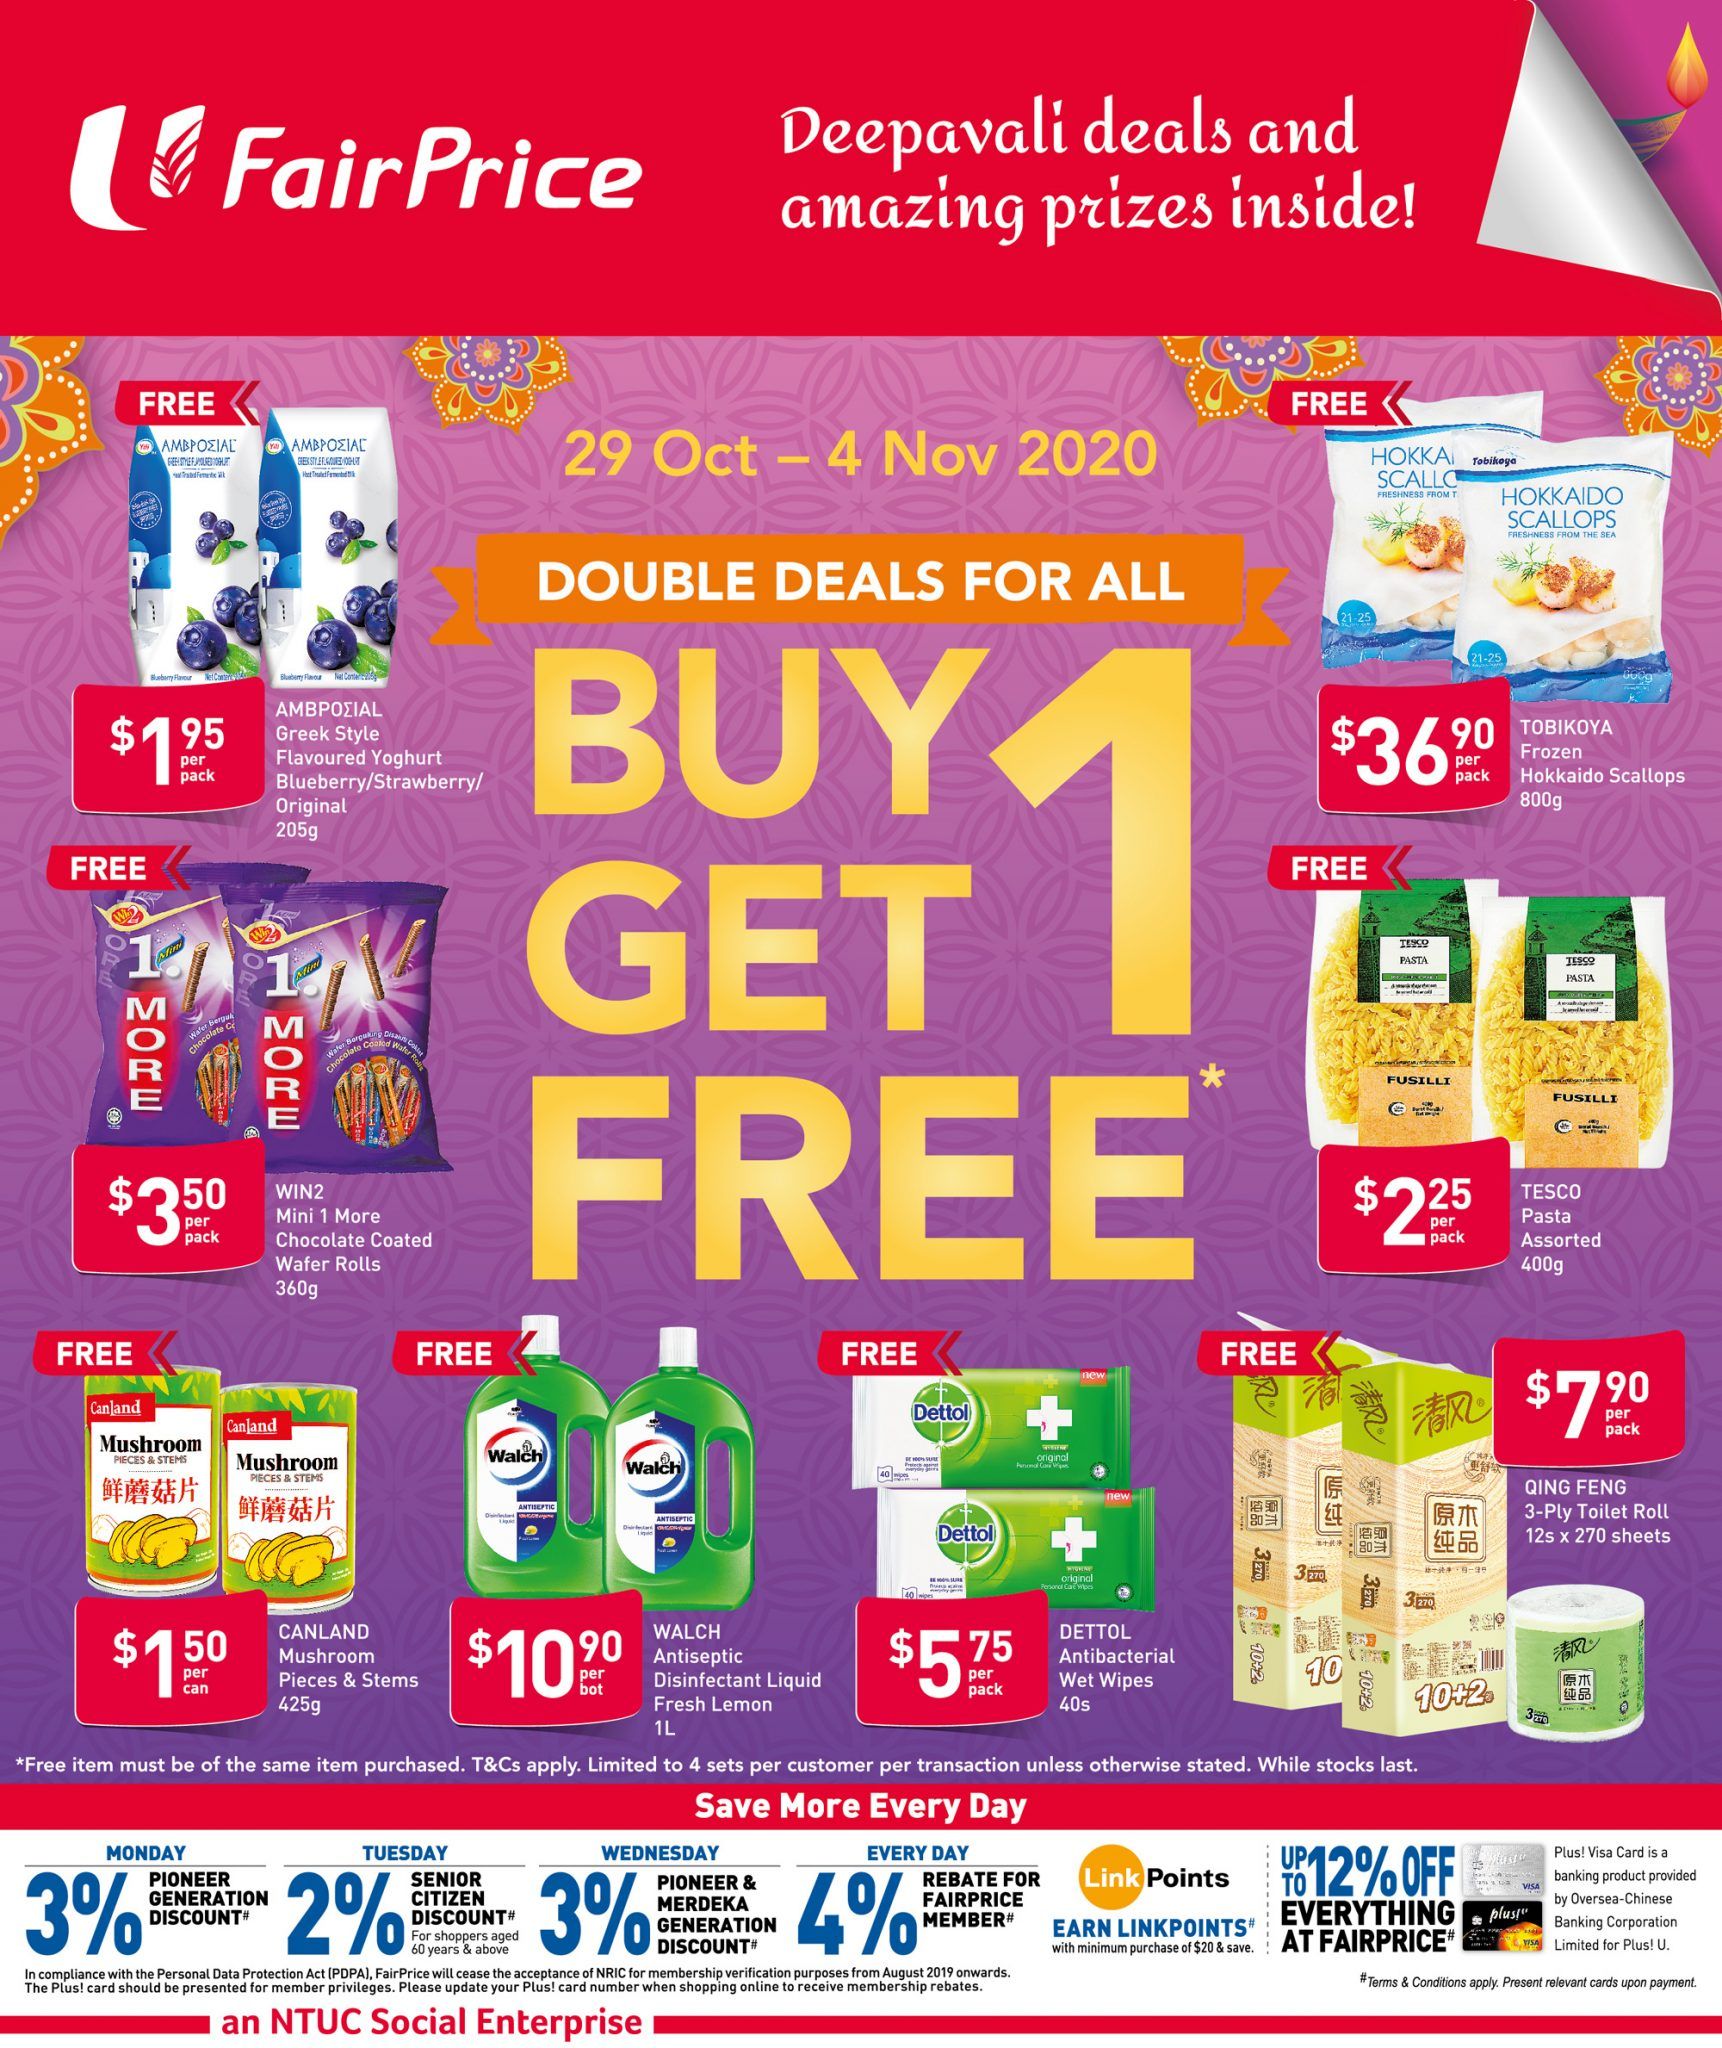 FairPrice buy-1-get-1-free deals from now will 4 November 2020